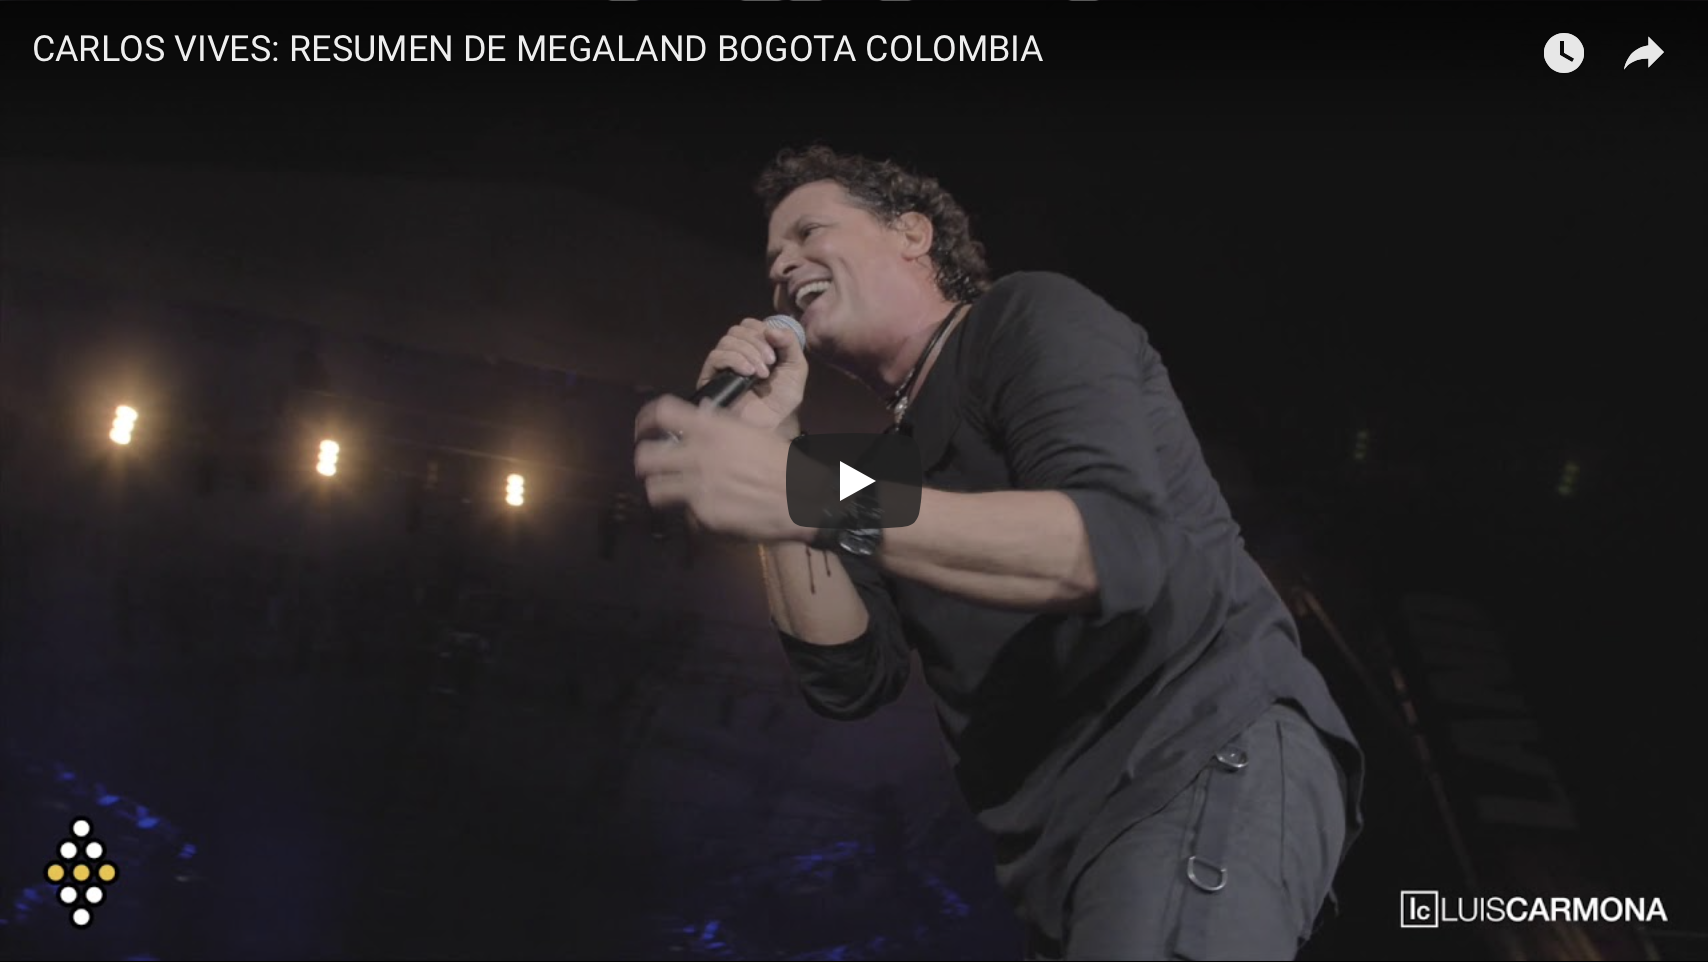 CARLOS VIVES: MEGALAND BOGOTA COLOMBIA